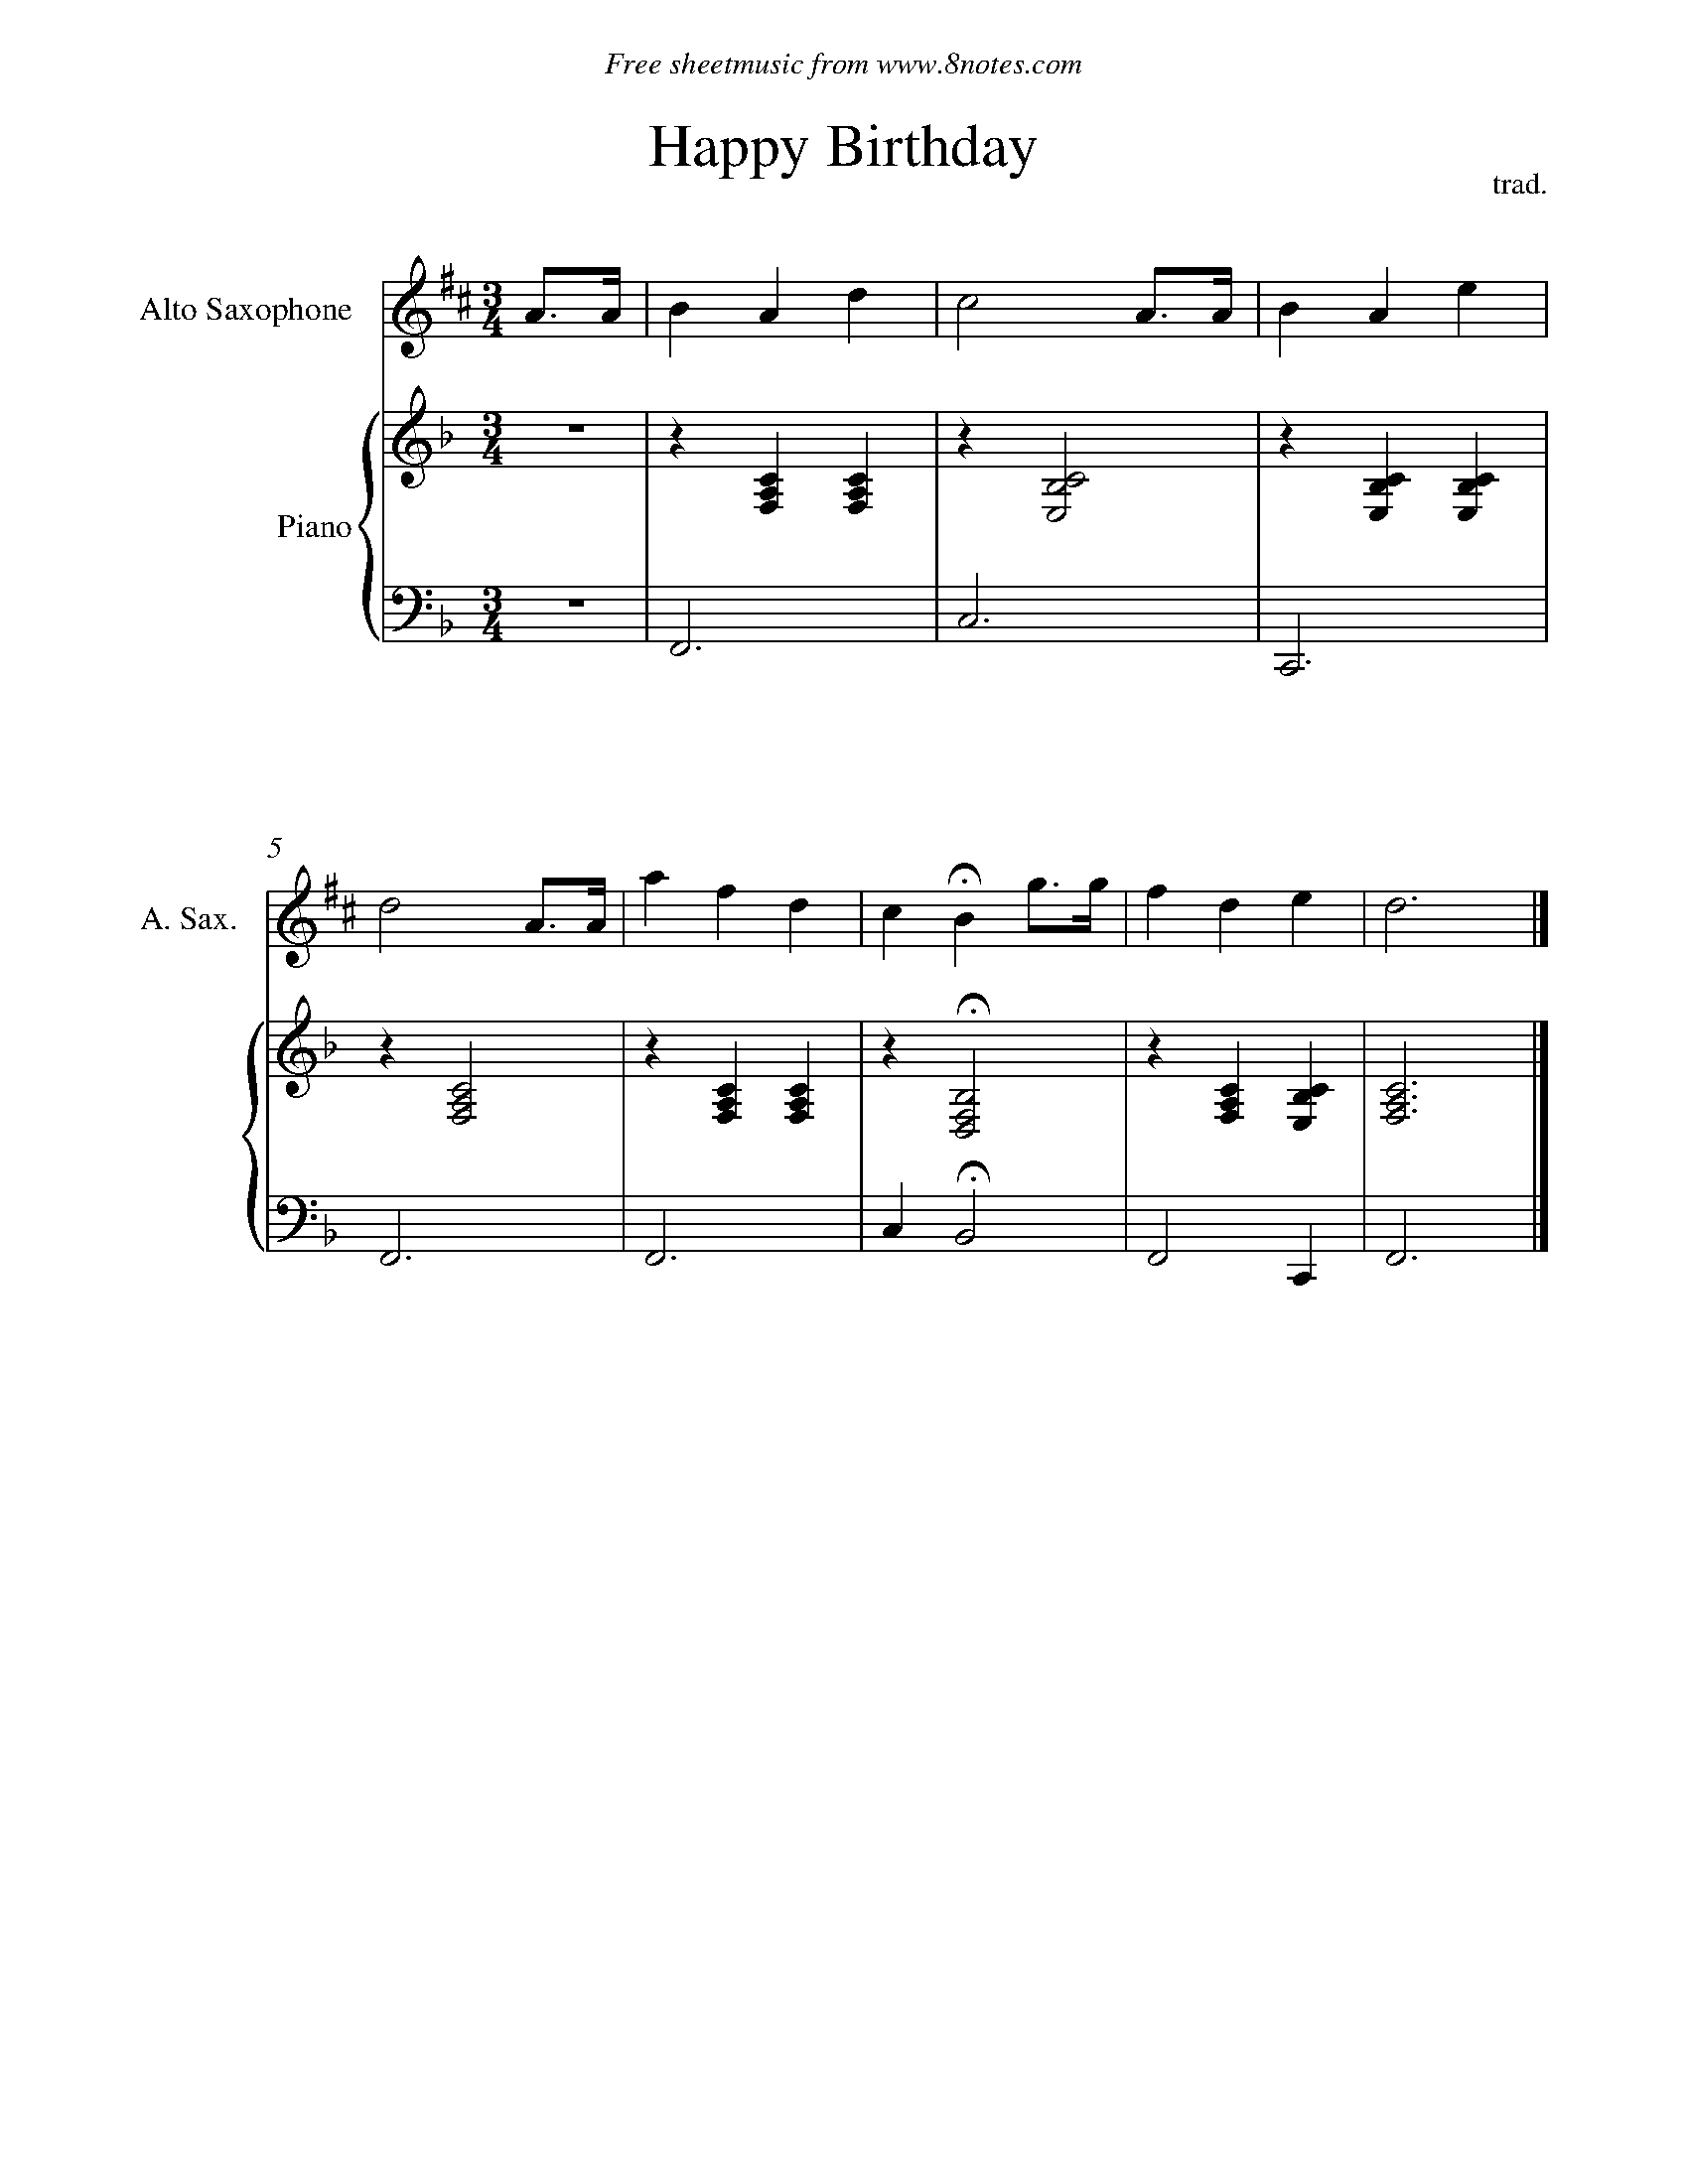 Happy Birthday Sheet Music For Saxophone 8notes Com